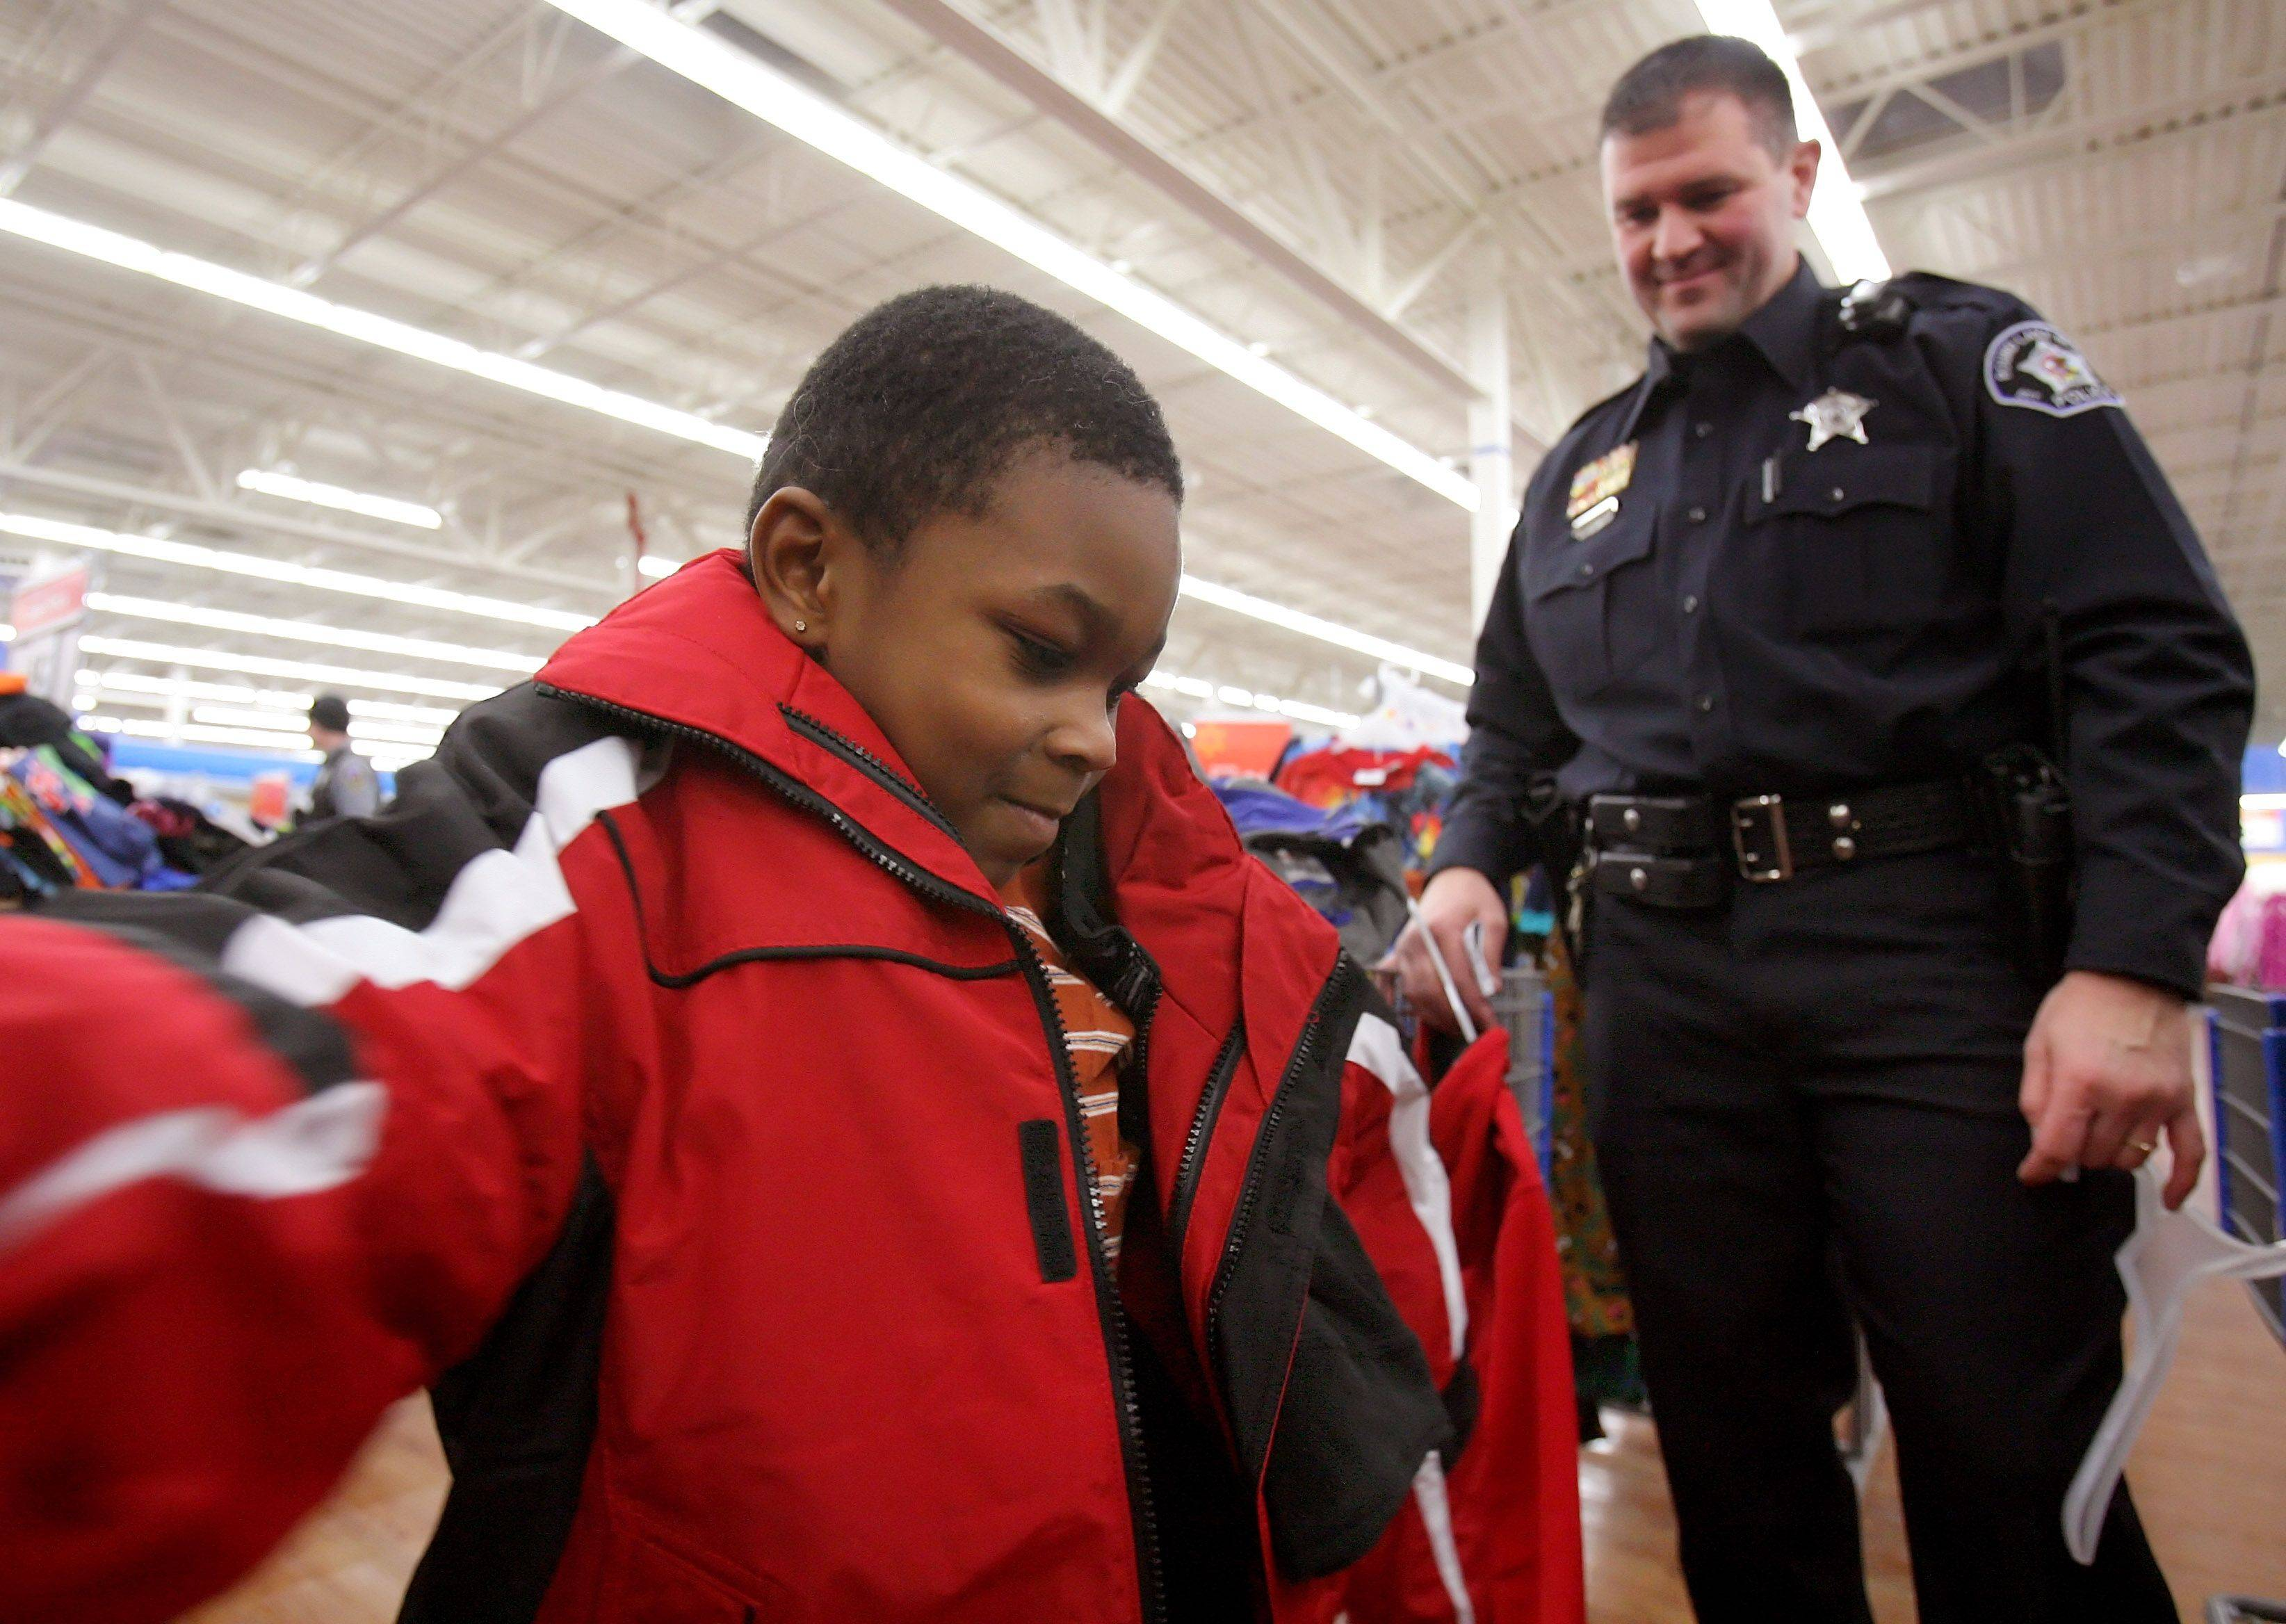 Round Lake Beach police officer Steve Sandacz watches as five-year-old Anthony Branch of Round Lake Beach tries on a winter coat as needy children were met by police officers and escorted through the Wal-Mart store to shop for Christmas presents Monday. This year because of generous donations, the Village of Round Lake Beach had 60 kids participate in the program.